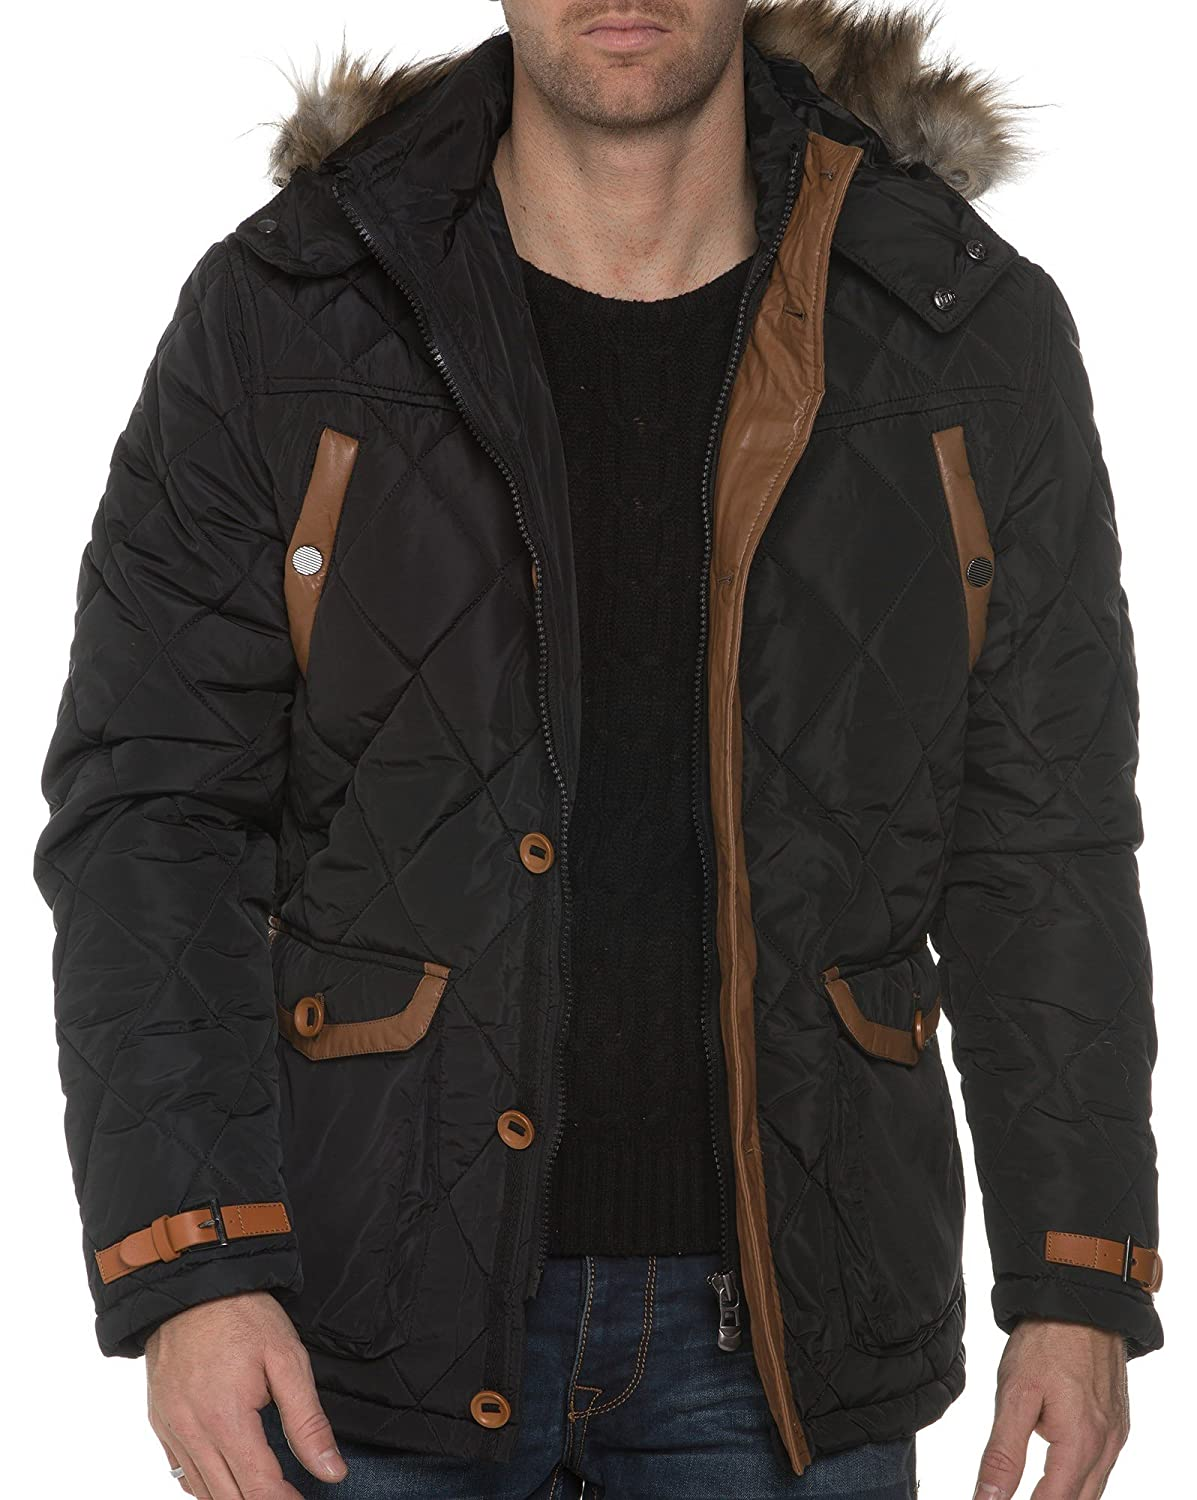 BLZ jeans - Black Quilted Jacket Removable Hood